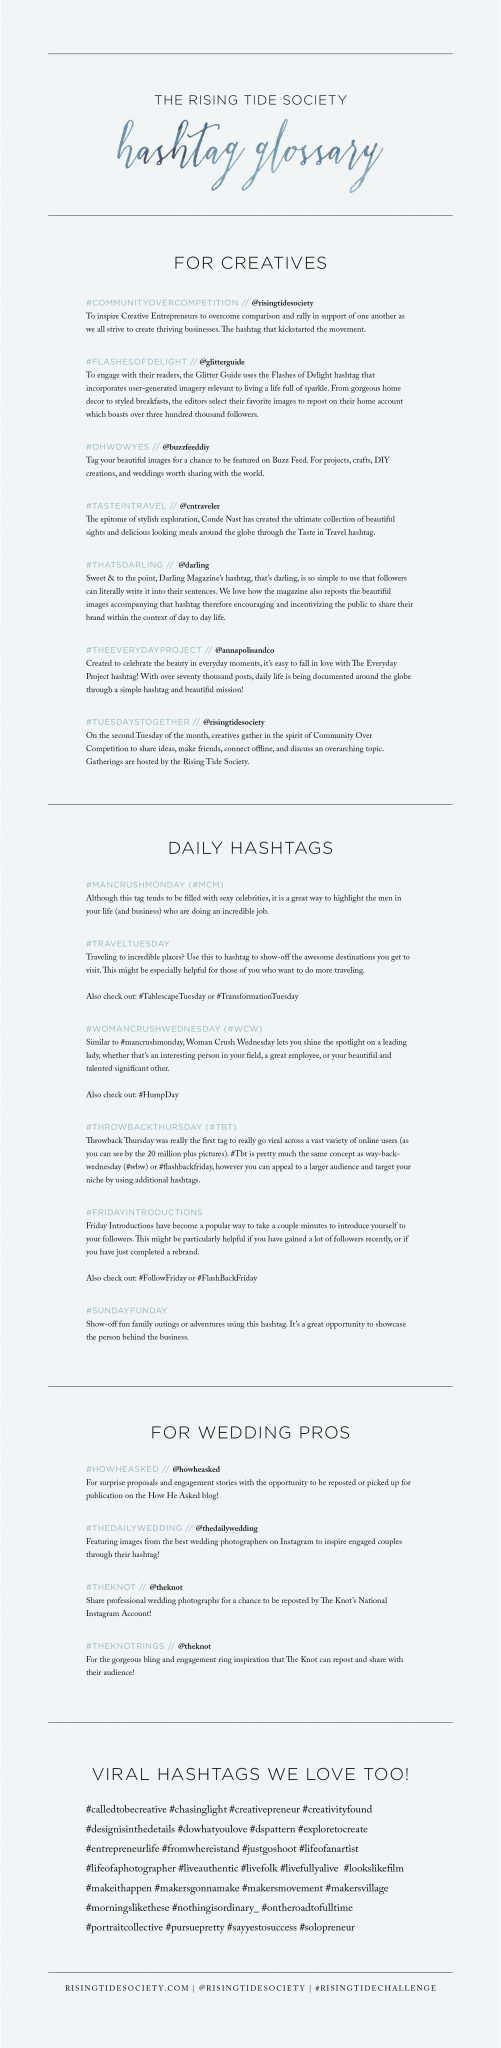 Hashtag Glossary for Creative Entrepreneurs - What hashtags will boost your Instagram strategy.